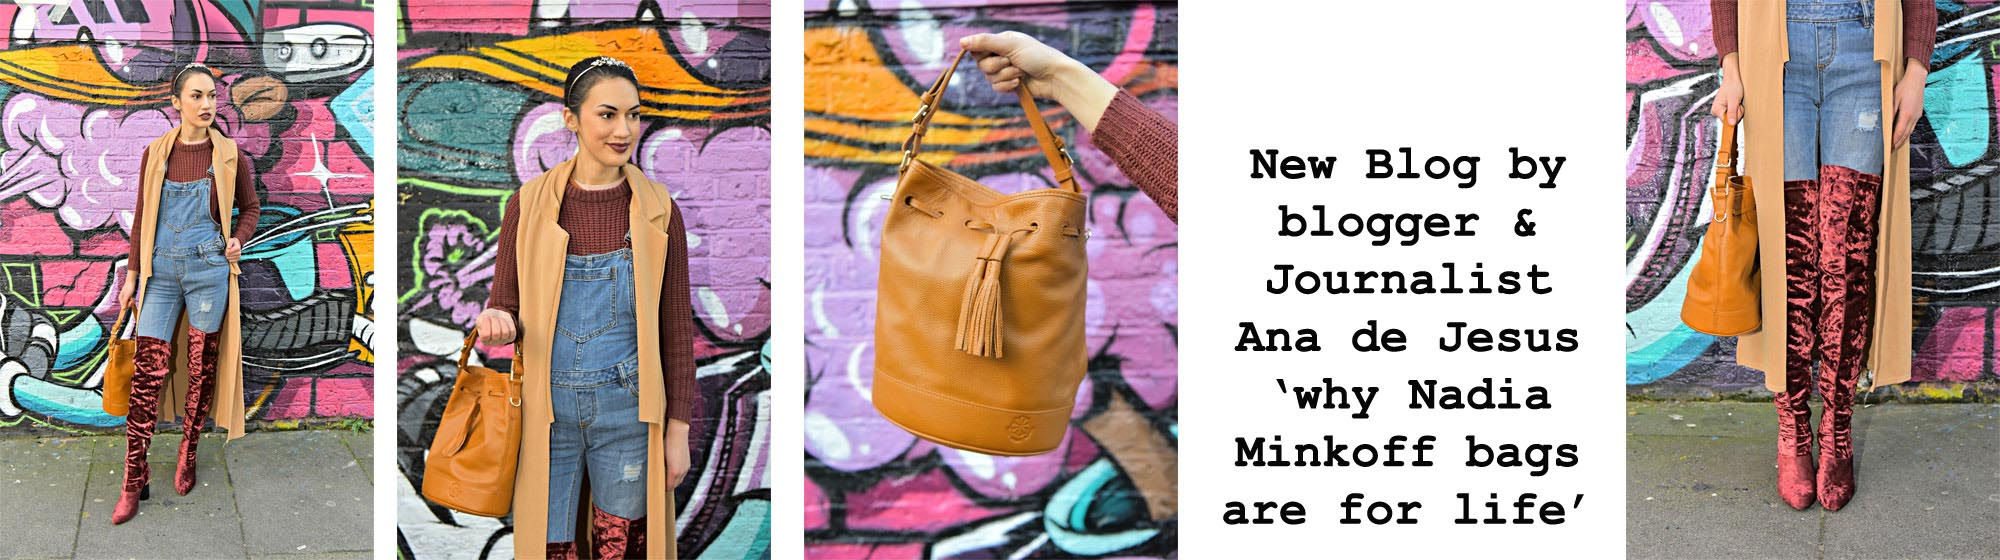 faded-spring-nadia-minkoff-bags-are-for-life-banner